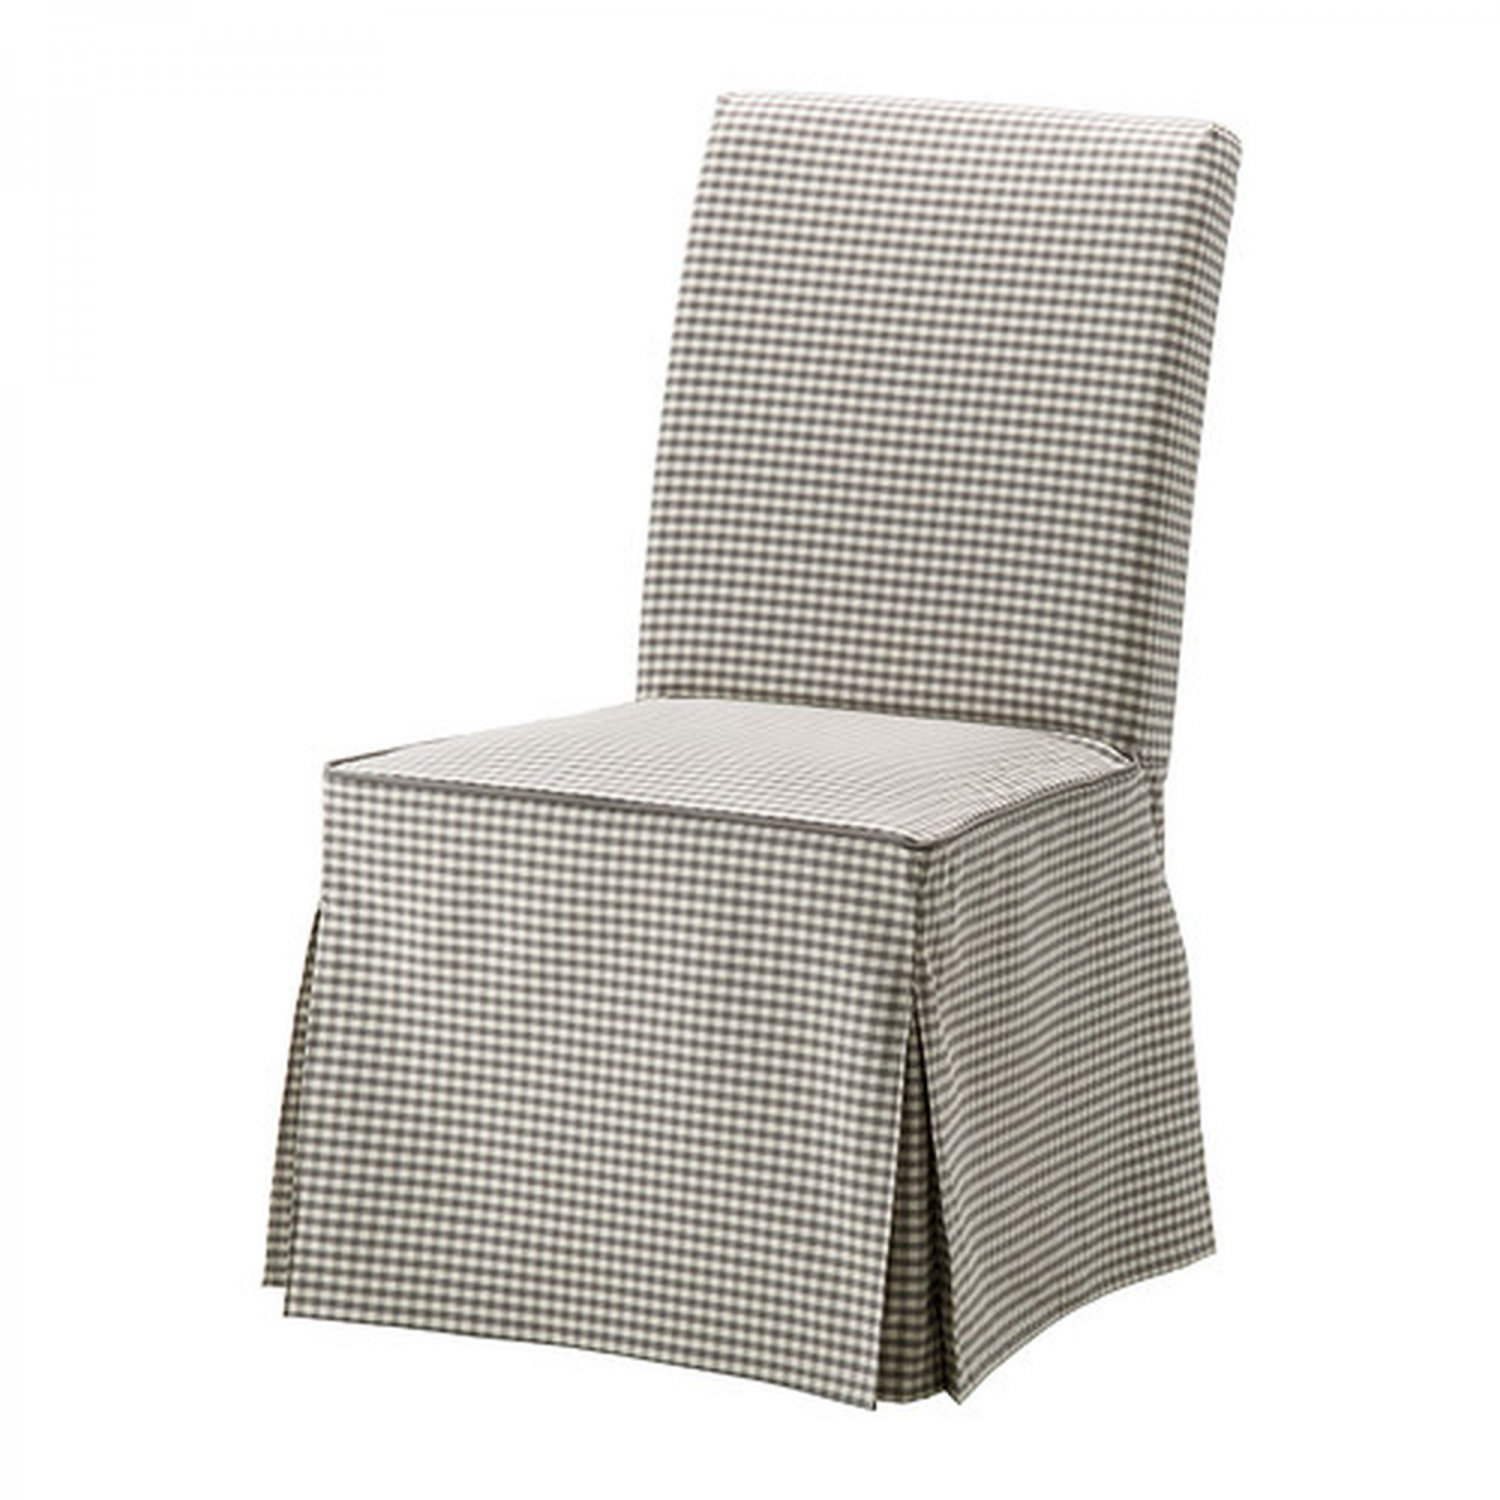 ikea henriksdal chair slipcover cover skirted sagmyra gray white checked s gmyra. Black Bedroom Furniture Sets. Home Design Ideas